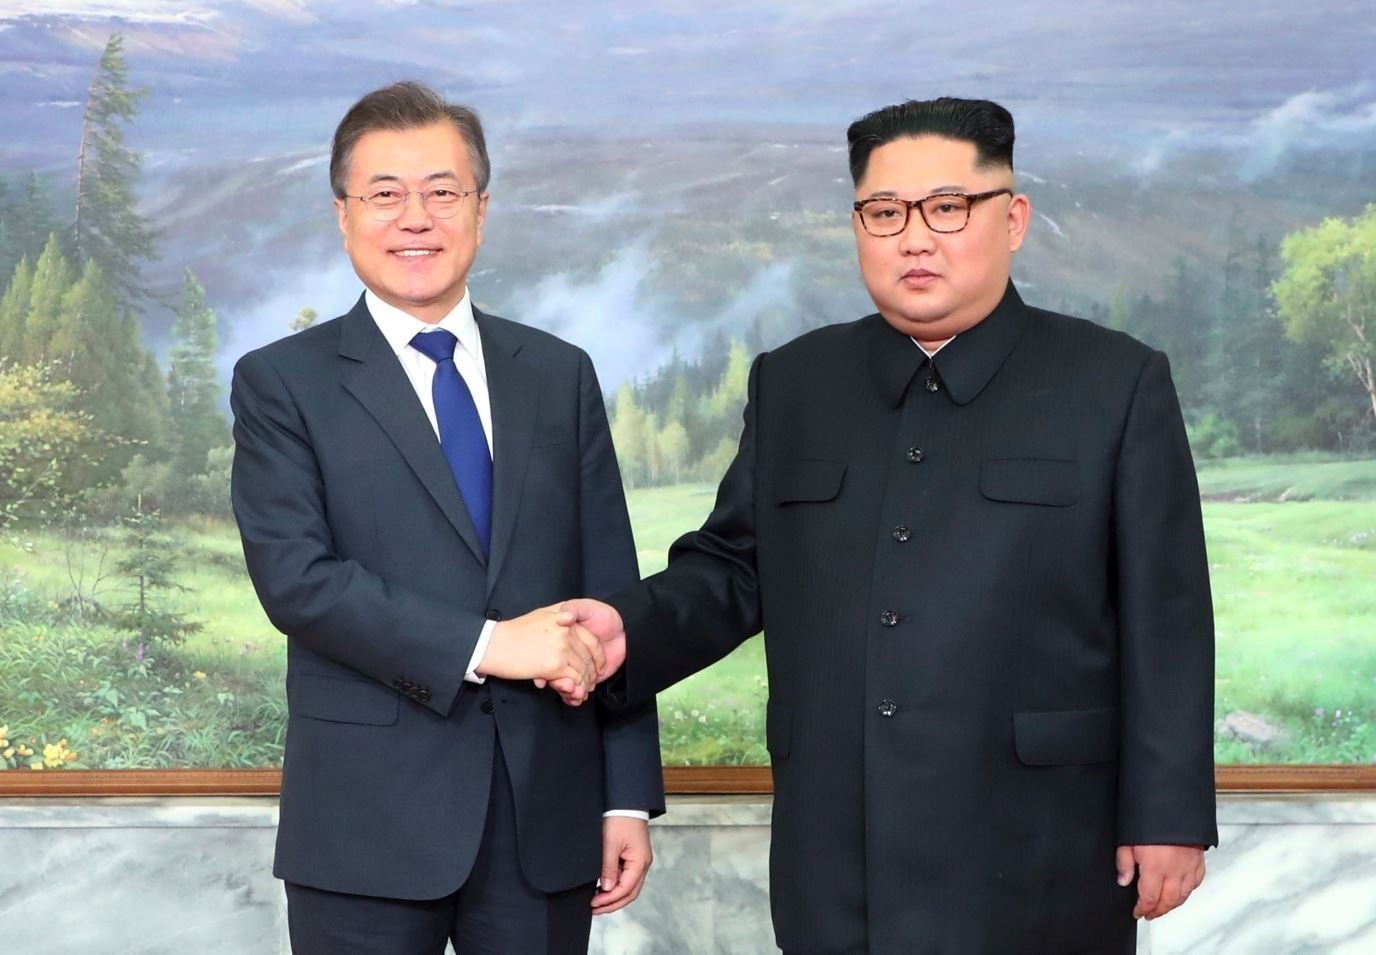 The North and South Korean leaders greet each other before Saturday's meeting.  CREDIT: South Korea Presidential Blue House/Yonhap via AP